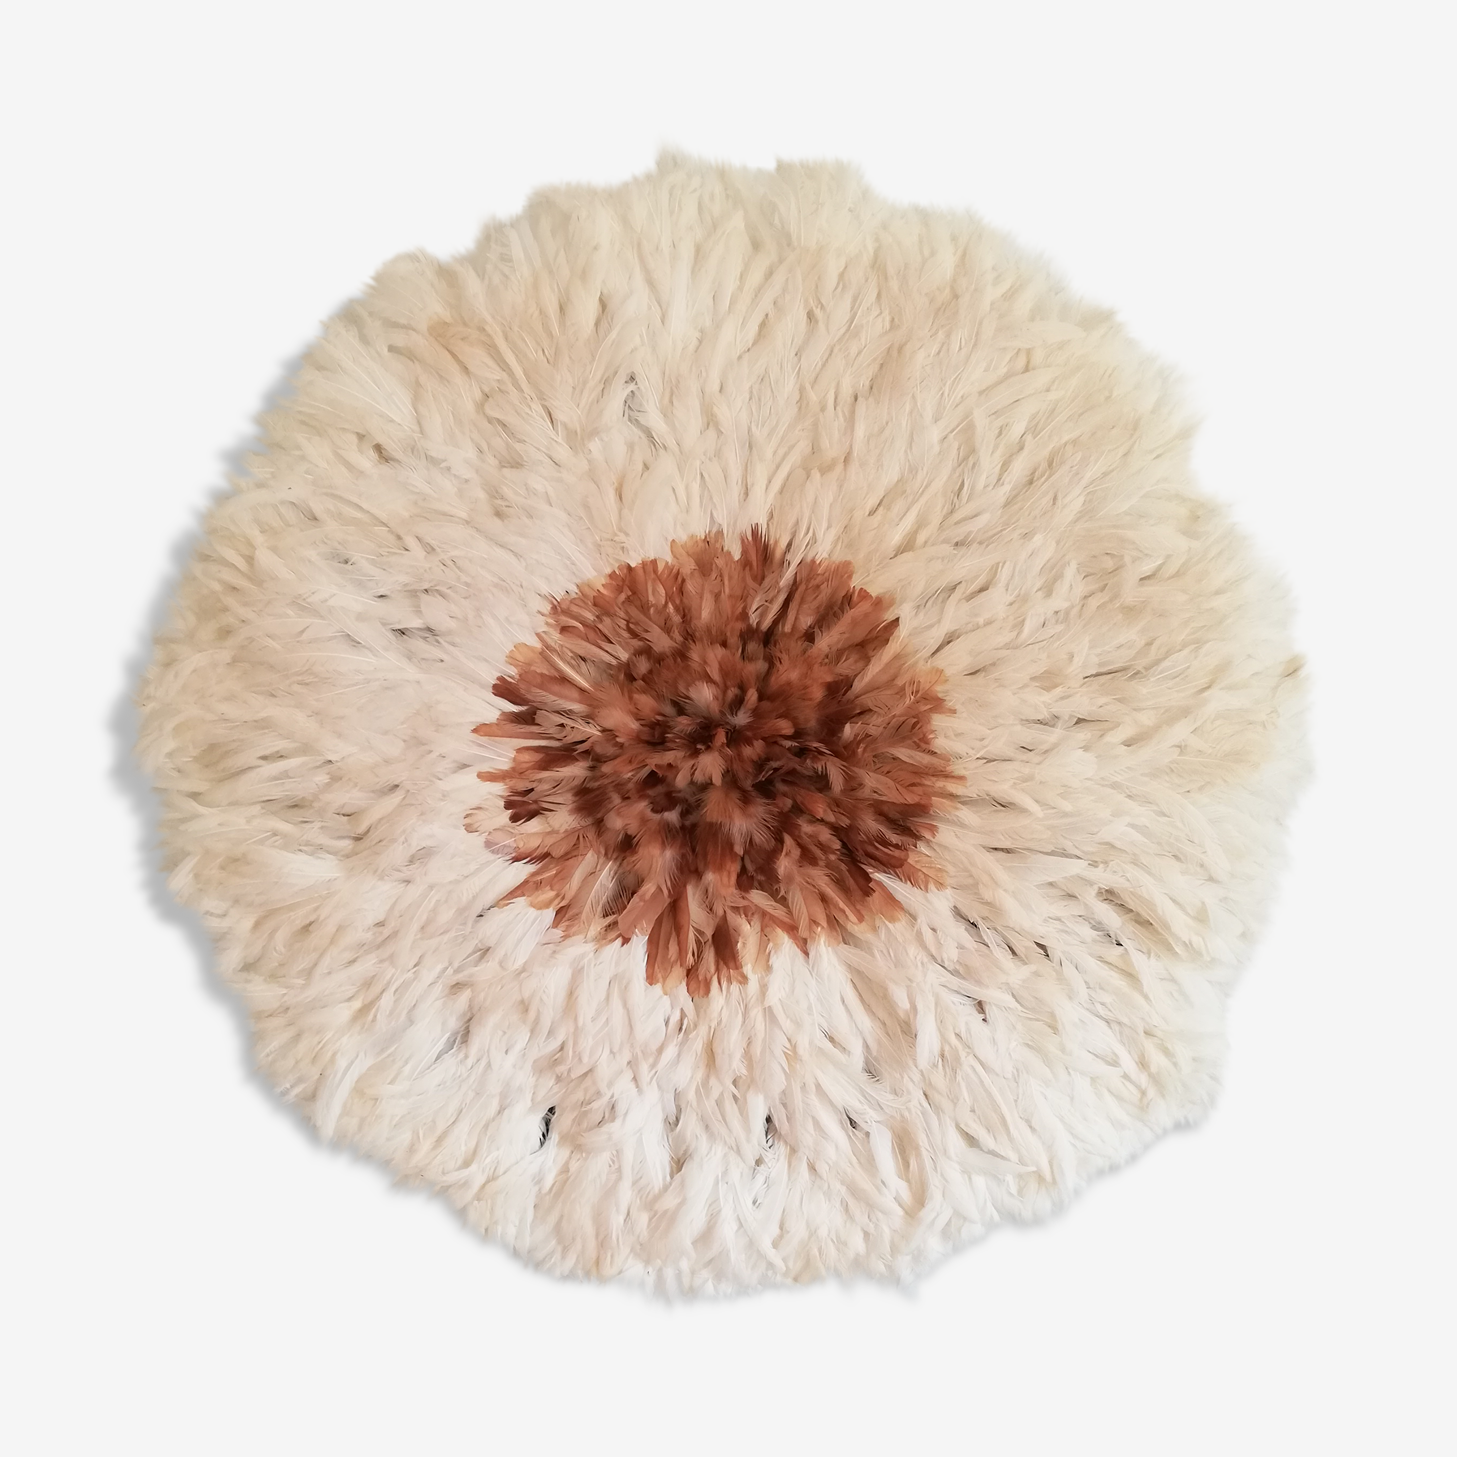 Juju hat white and natural heart 60cm